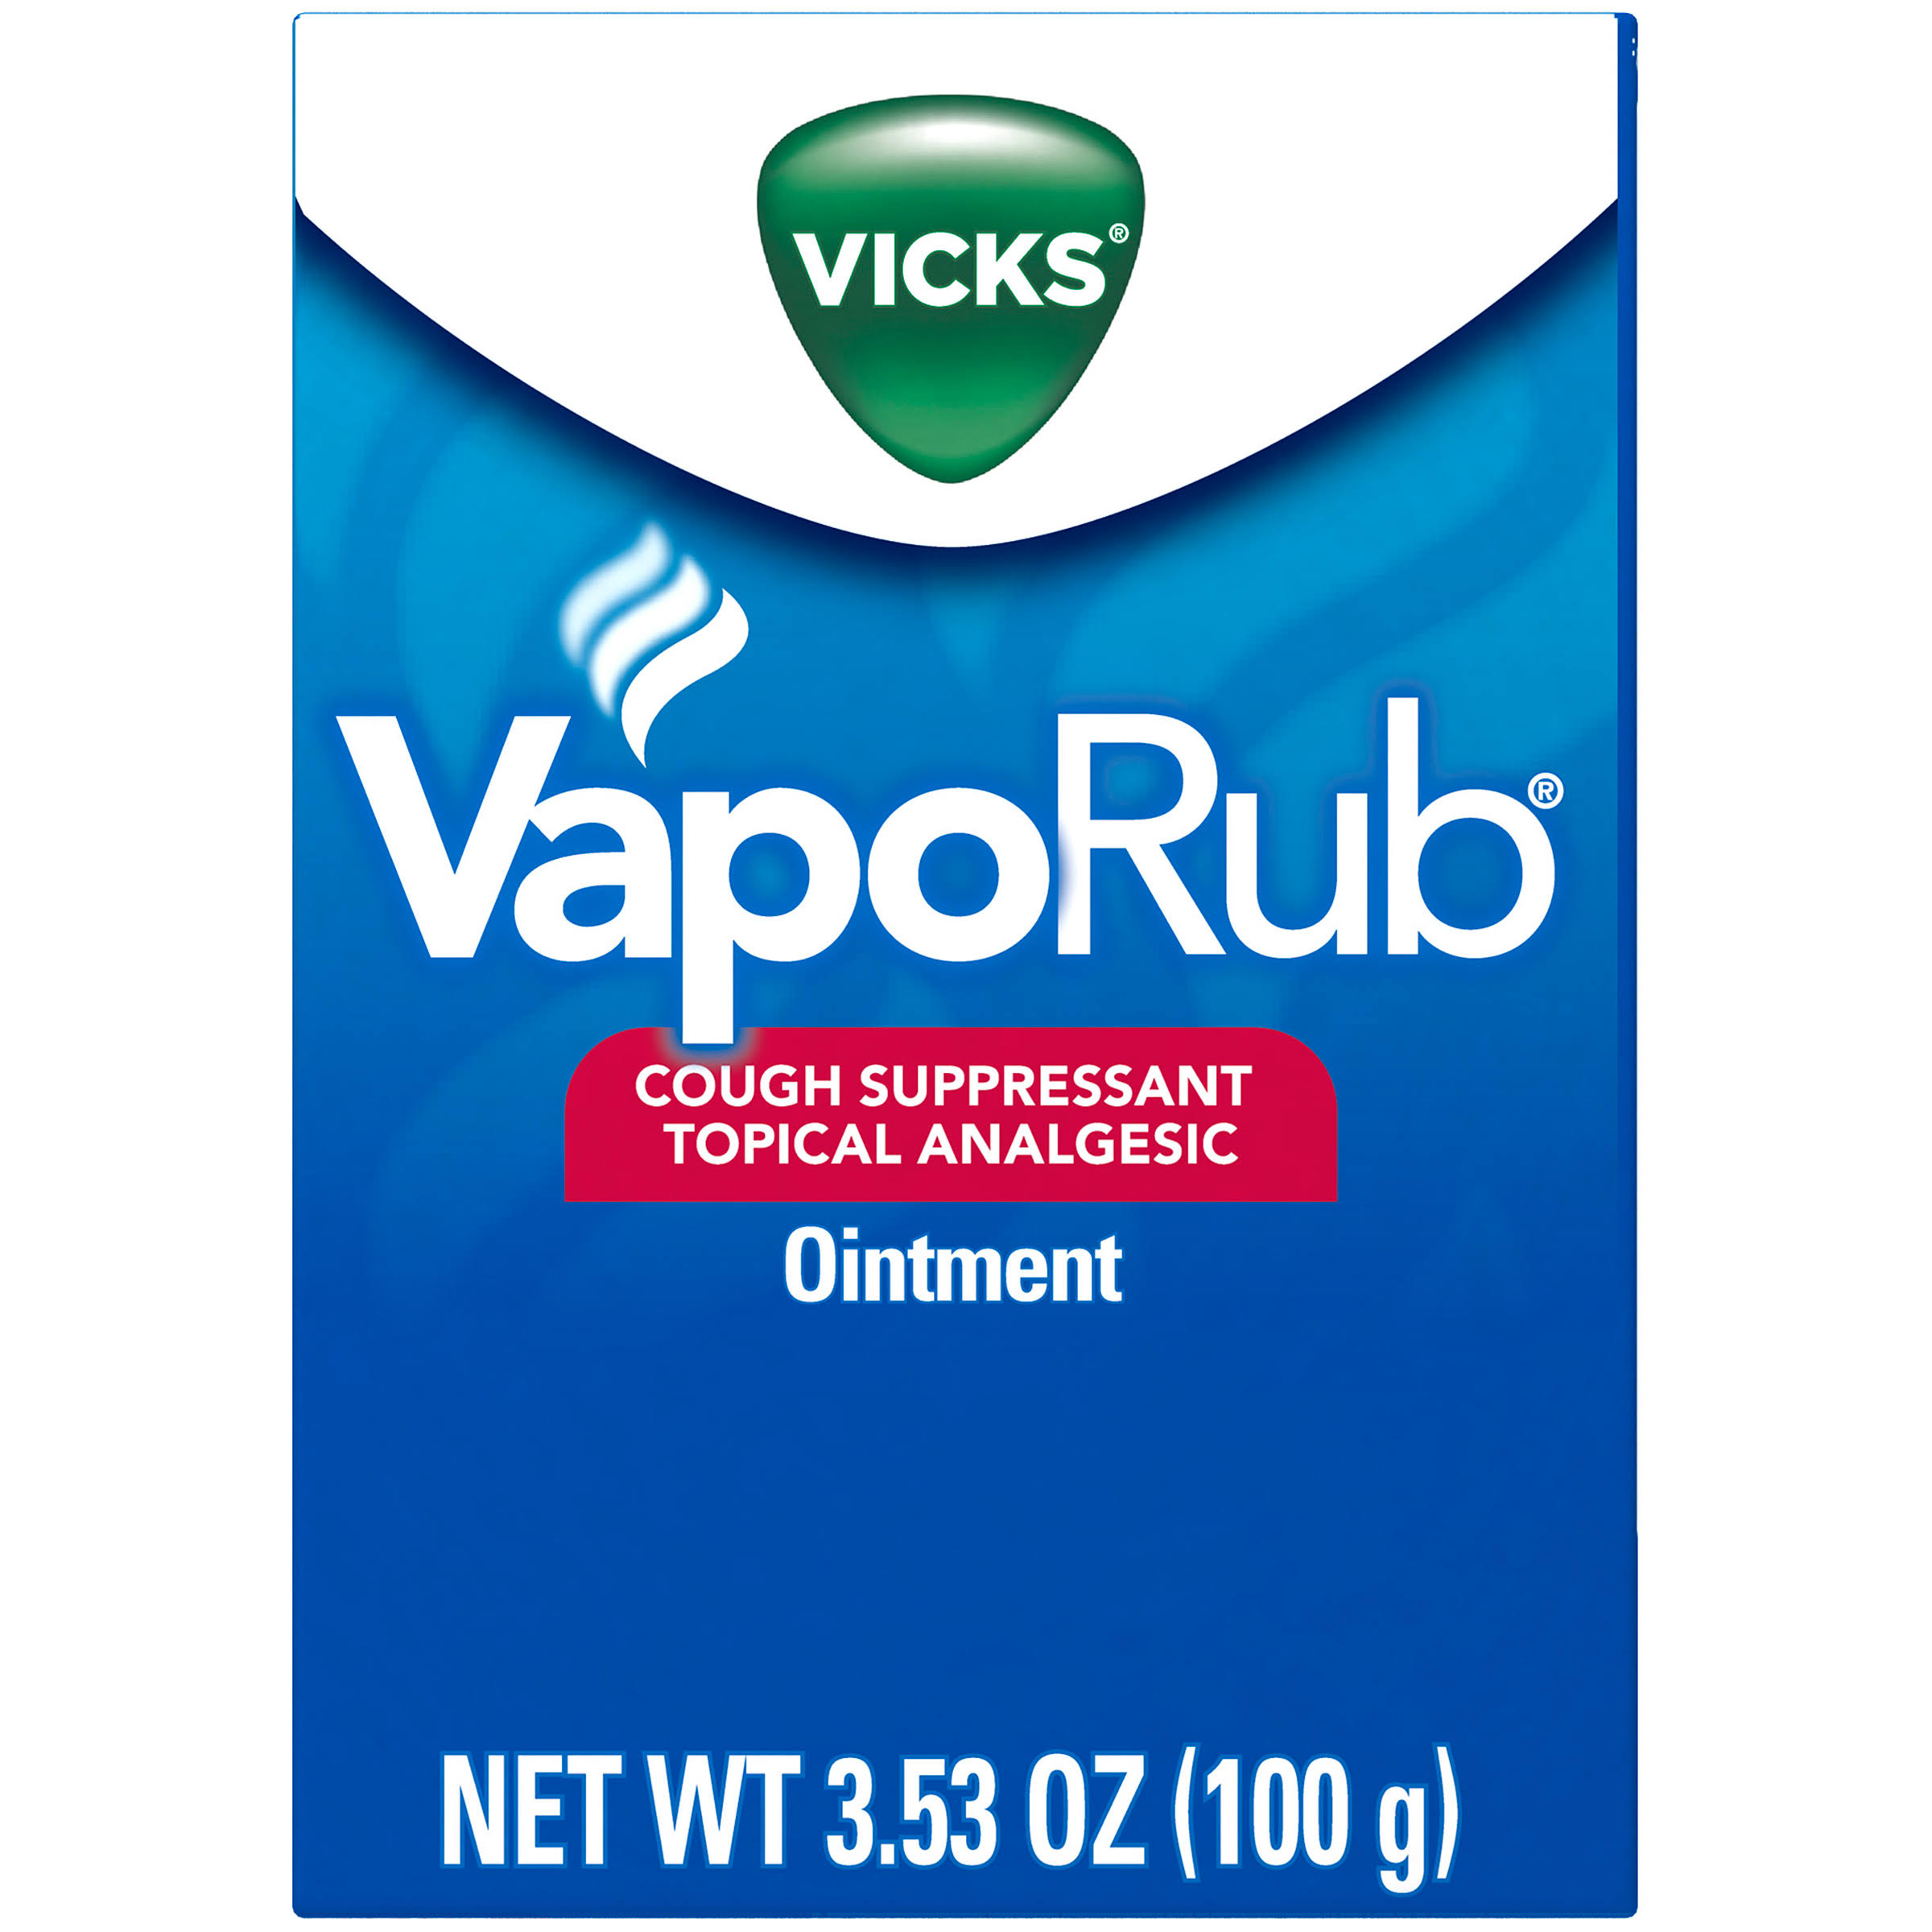 Vicks Vapor Rub Cough Suppressant Topical Analgesic Ointment - 3.53oz